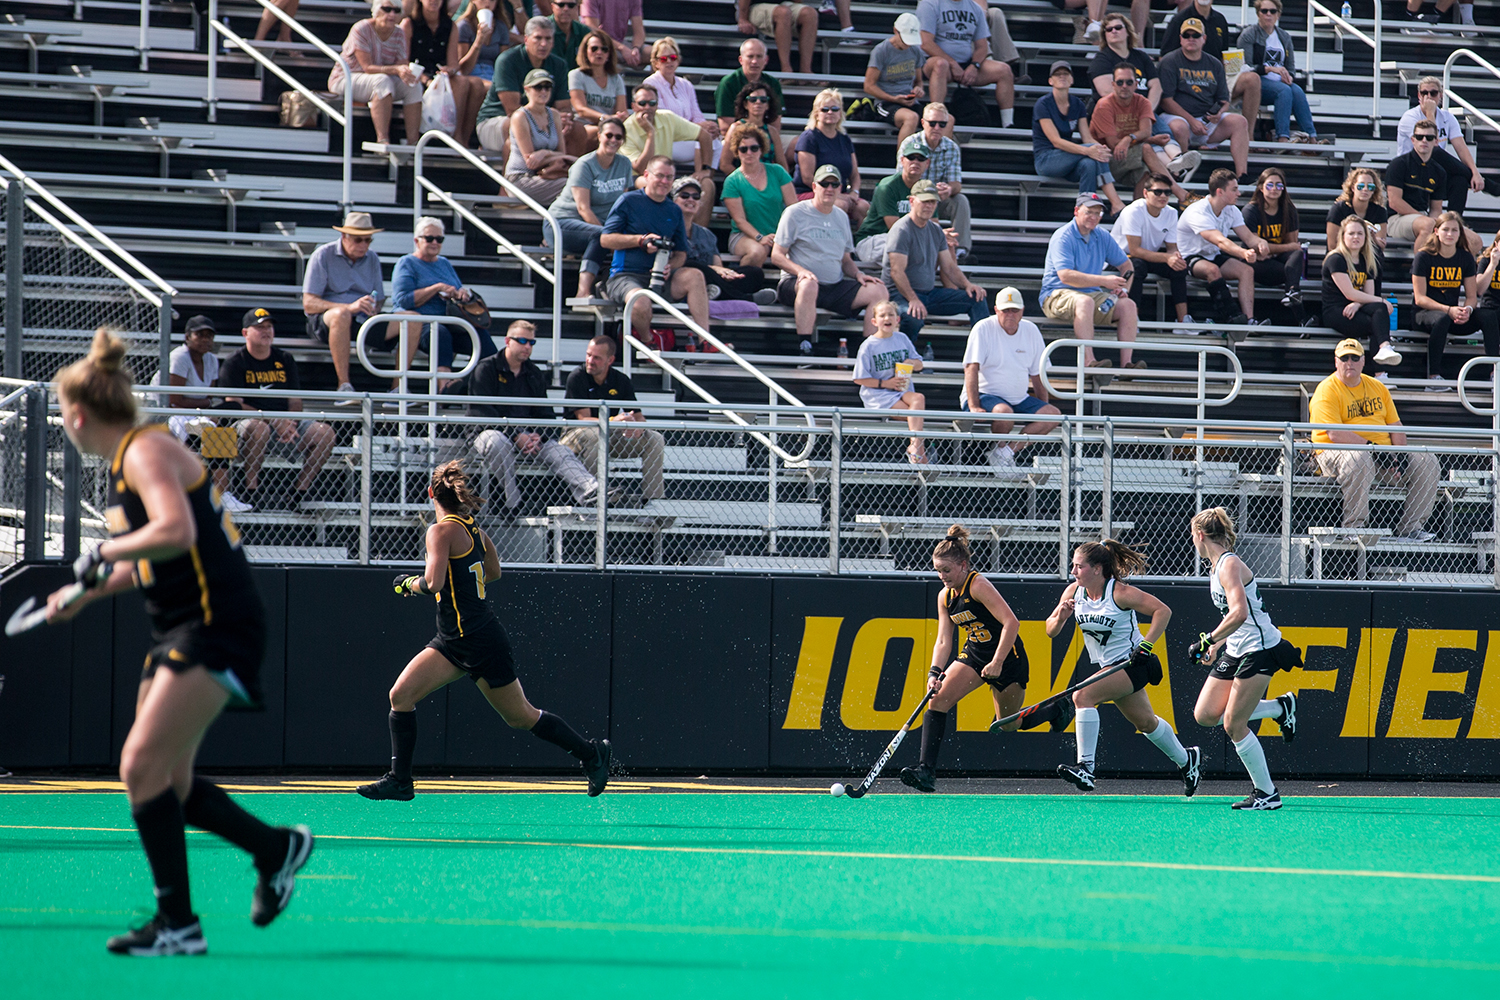 Iowa%27s+Maddy+Murphy+evades+the+defense+during+a+field+hockey+match+between+Iowa+and+Dartmouth+College+at+Grant+Field+on+Friday%2C+August+31%2C+2018.+The+Hawkeyes+shut+out+the+Big+Green%2C+6-0.